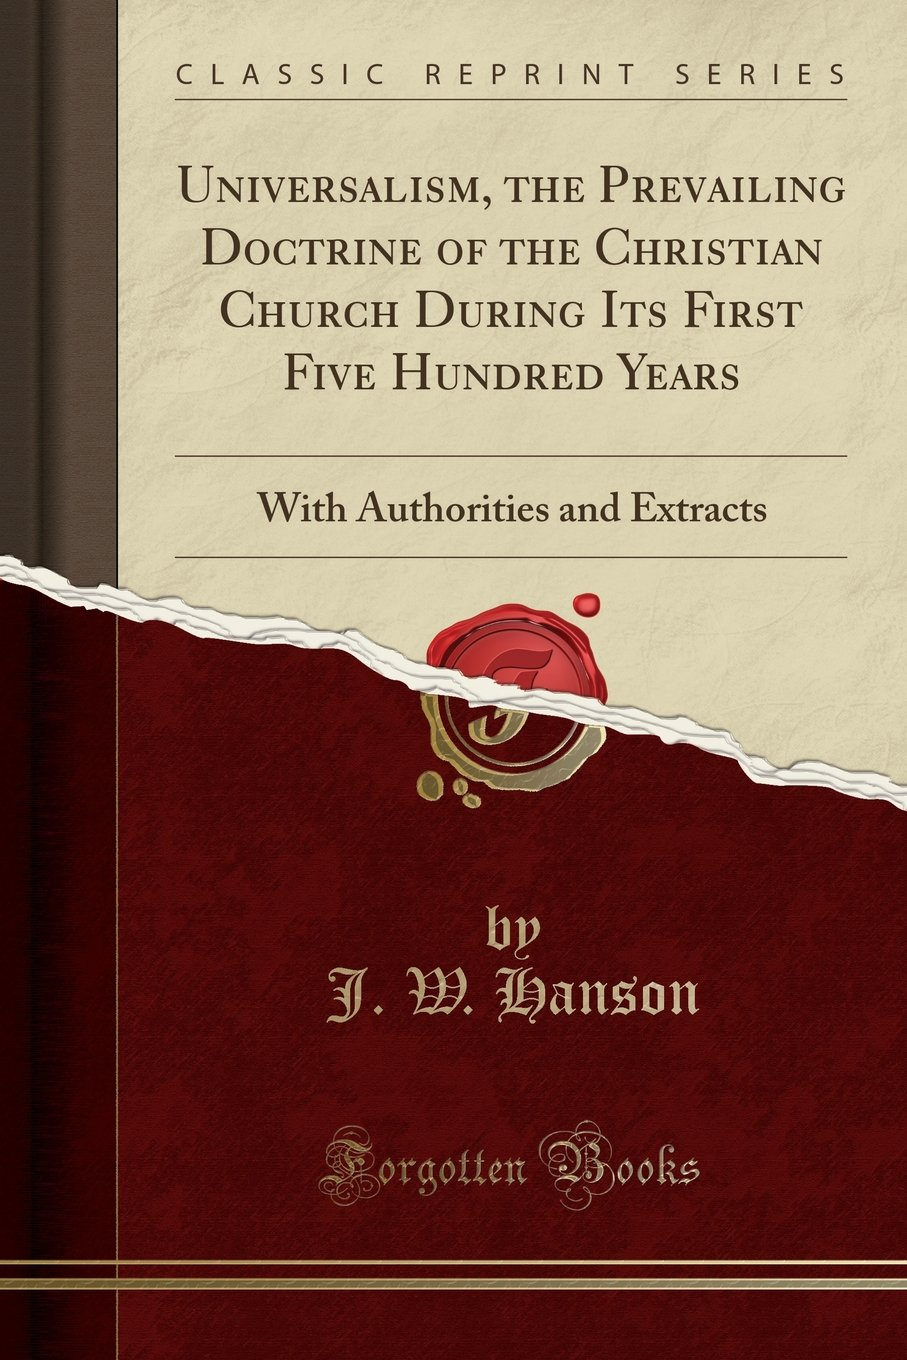 Universalism, the Prevailing Doctrine of the Christian Church During Its First Five Hundred Years: With Authorities and Extracts (Classic Reprint) PDF